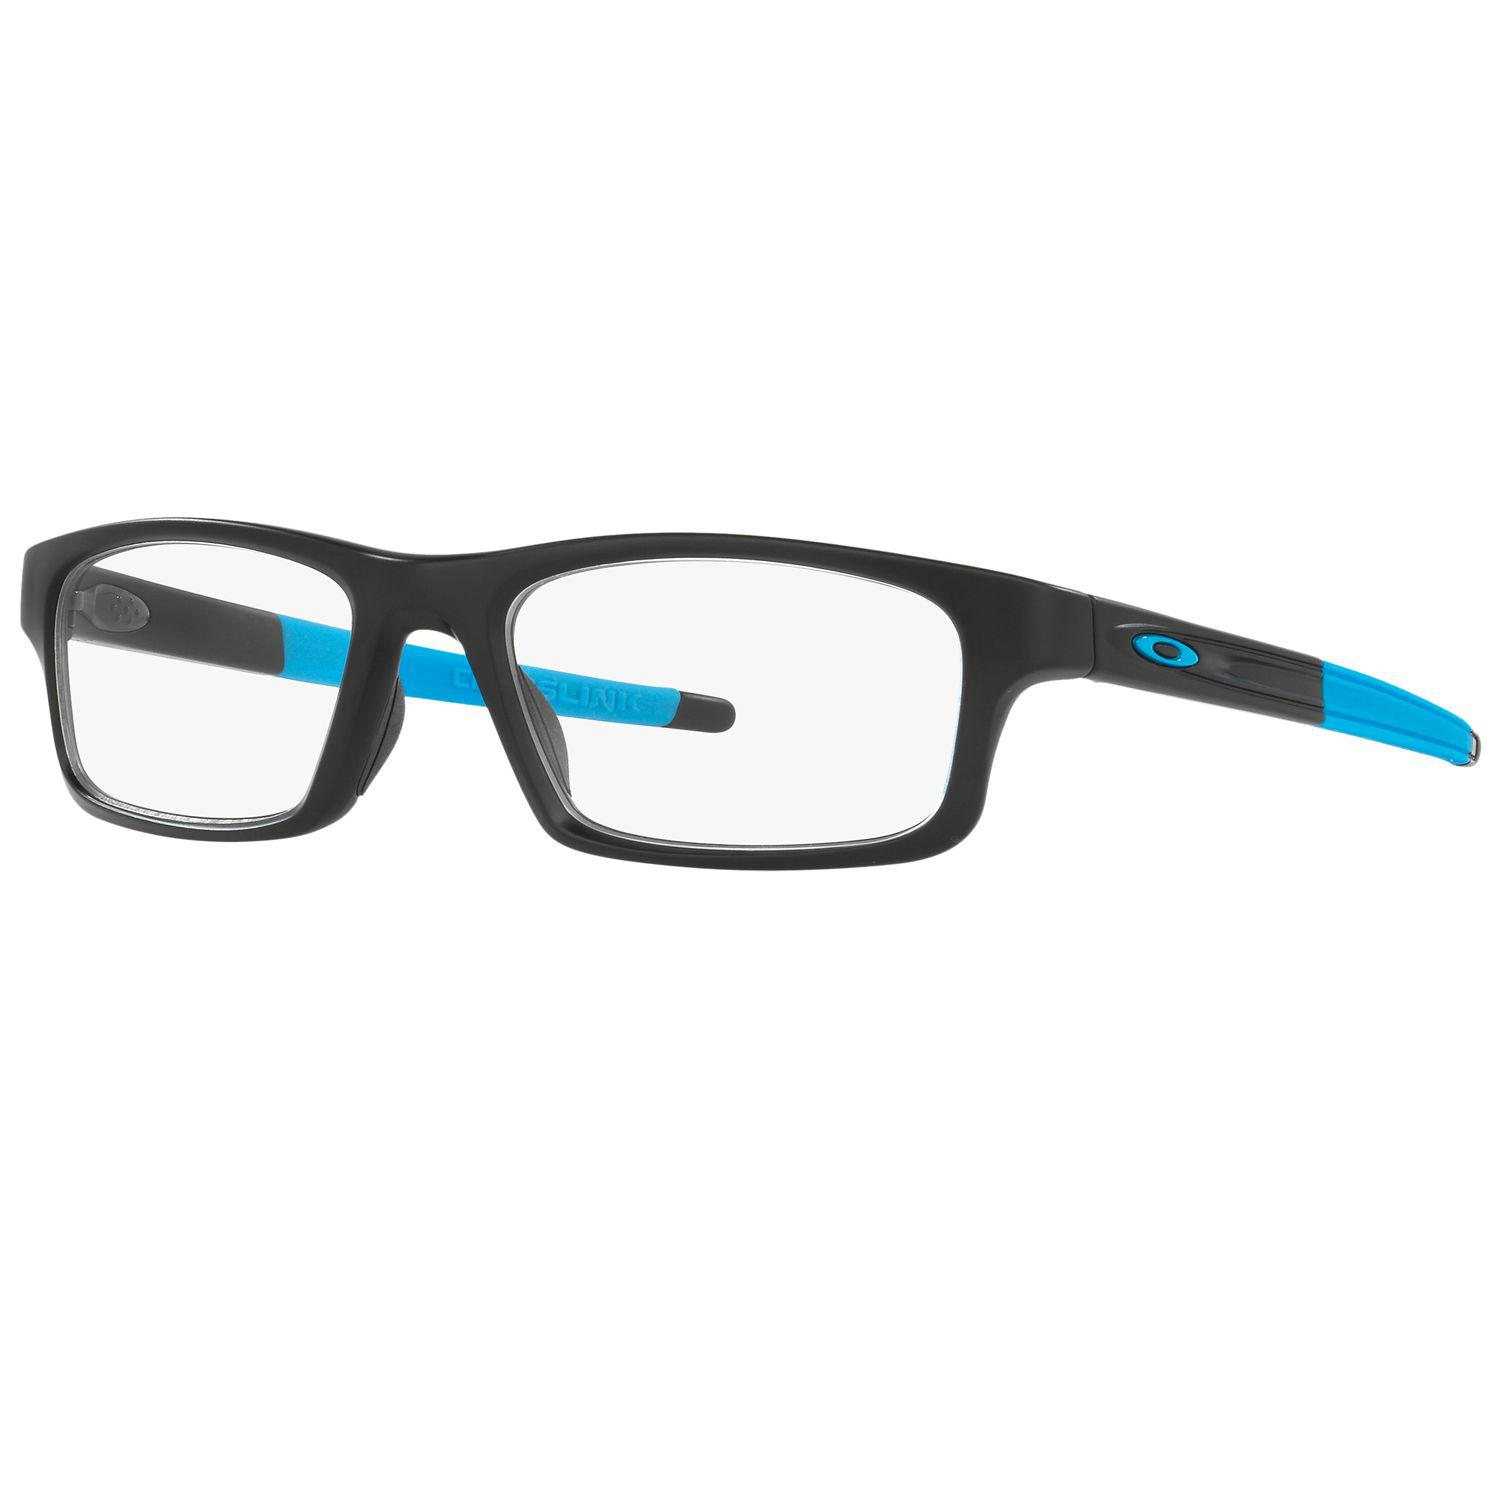 2cab8b0216 Lyst - Oakley Crosslink Pitch Ox 8037 01 52mm Black Rectangular ...